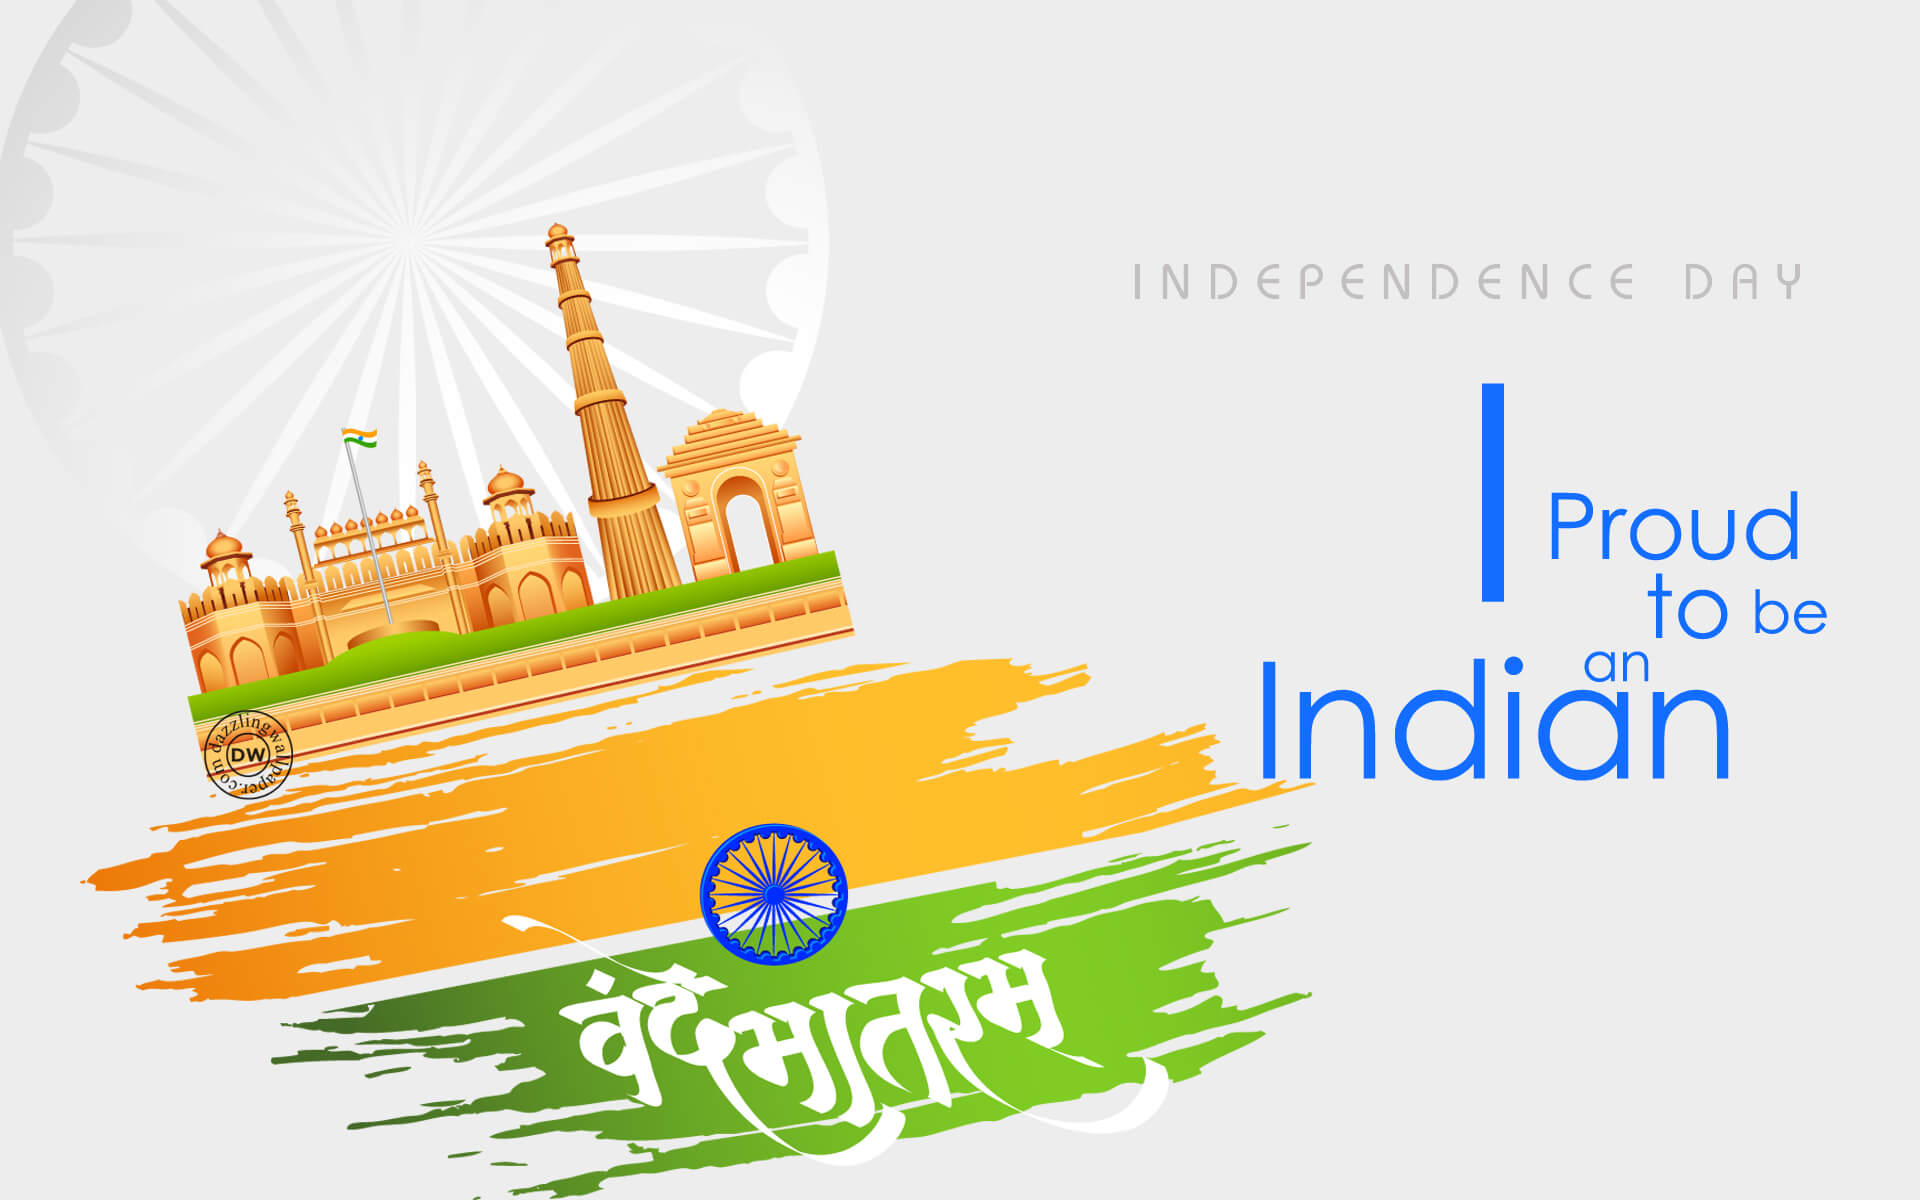 india independence day 15th august wallpaper